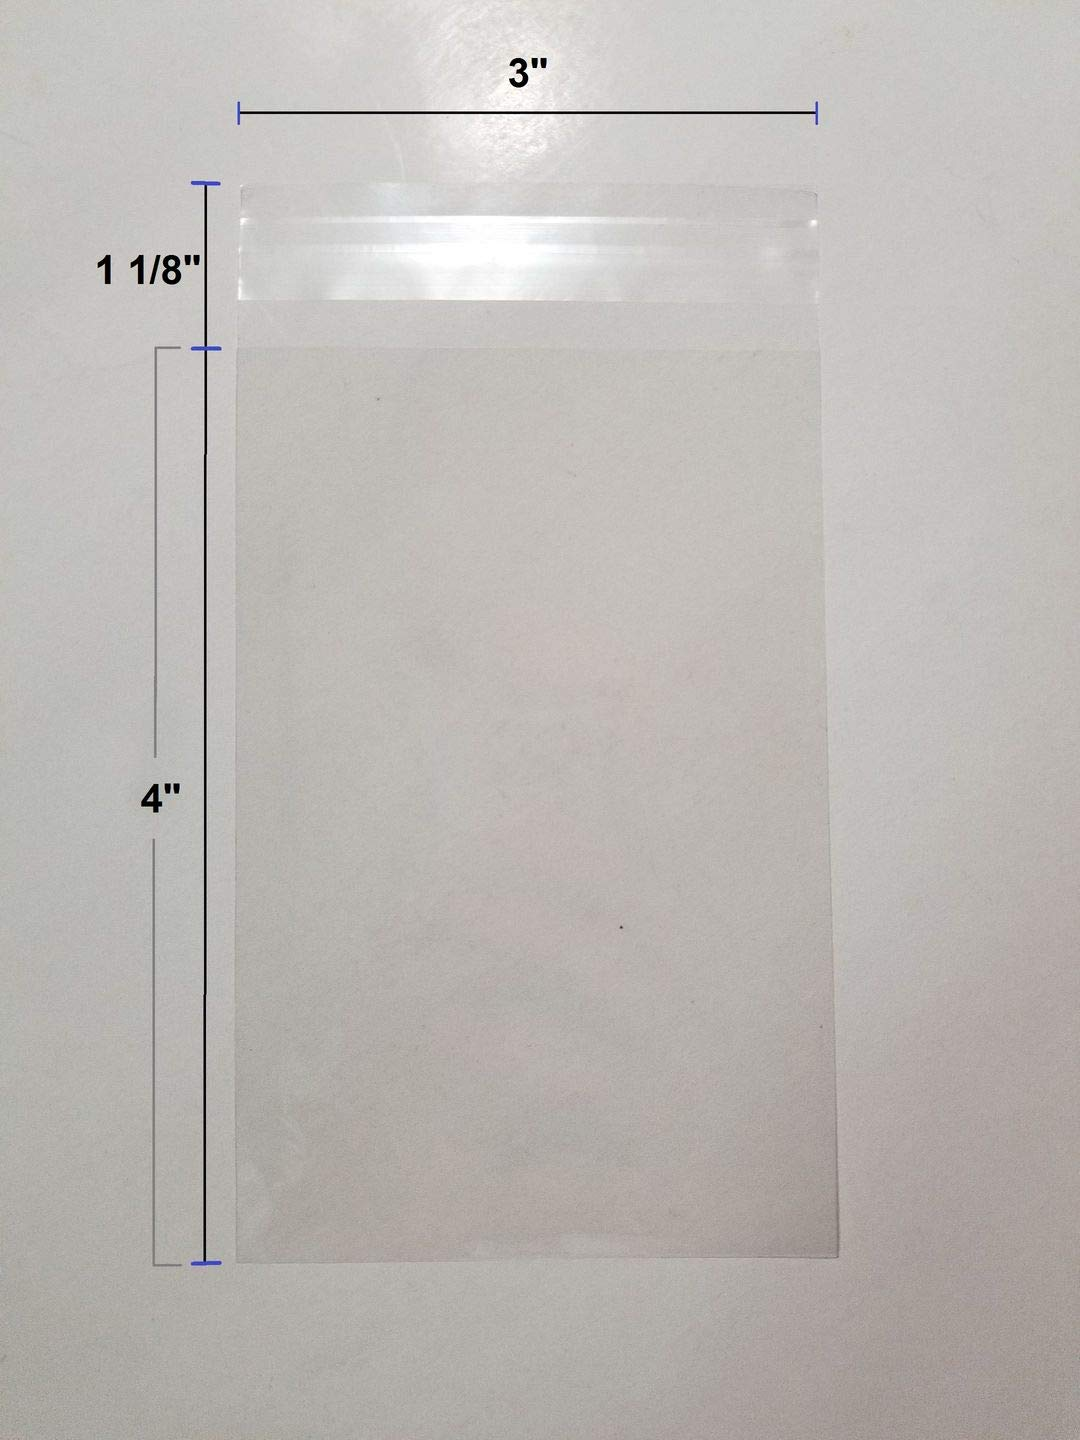 UNIQUEPACKING 100 Pcs 3x4 Crystal Clear Resealable Recloseable Cello/Cellophane Bags